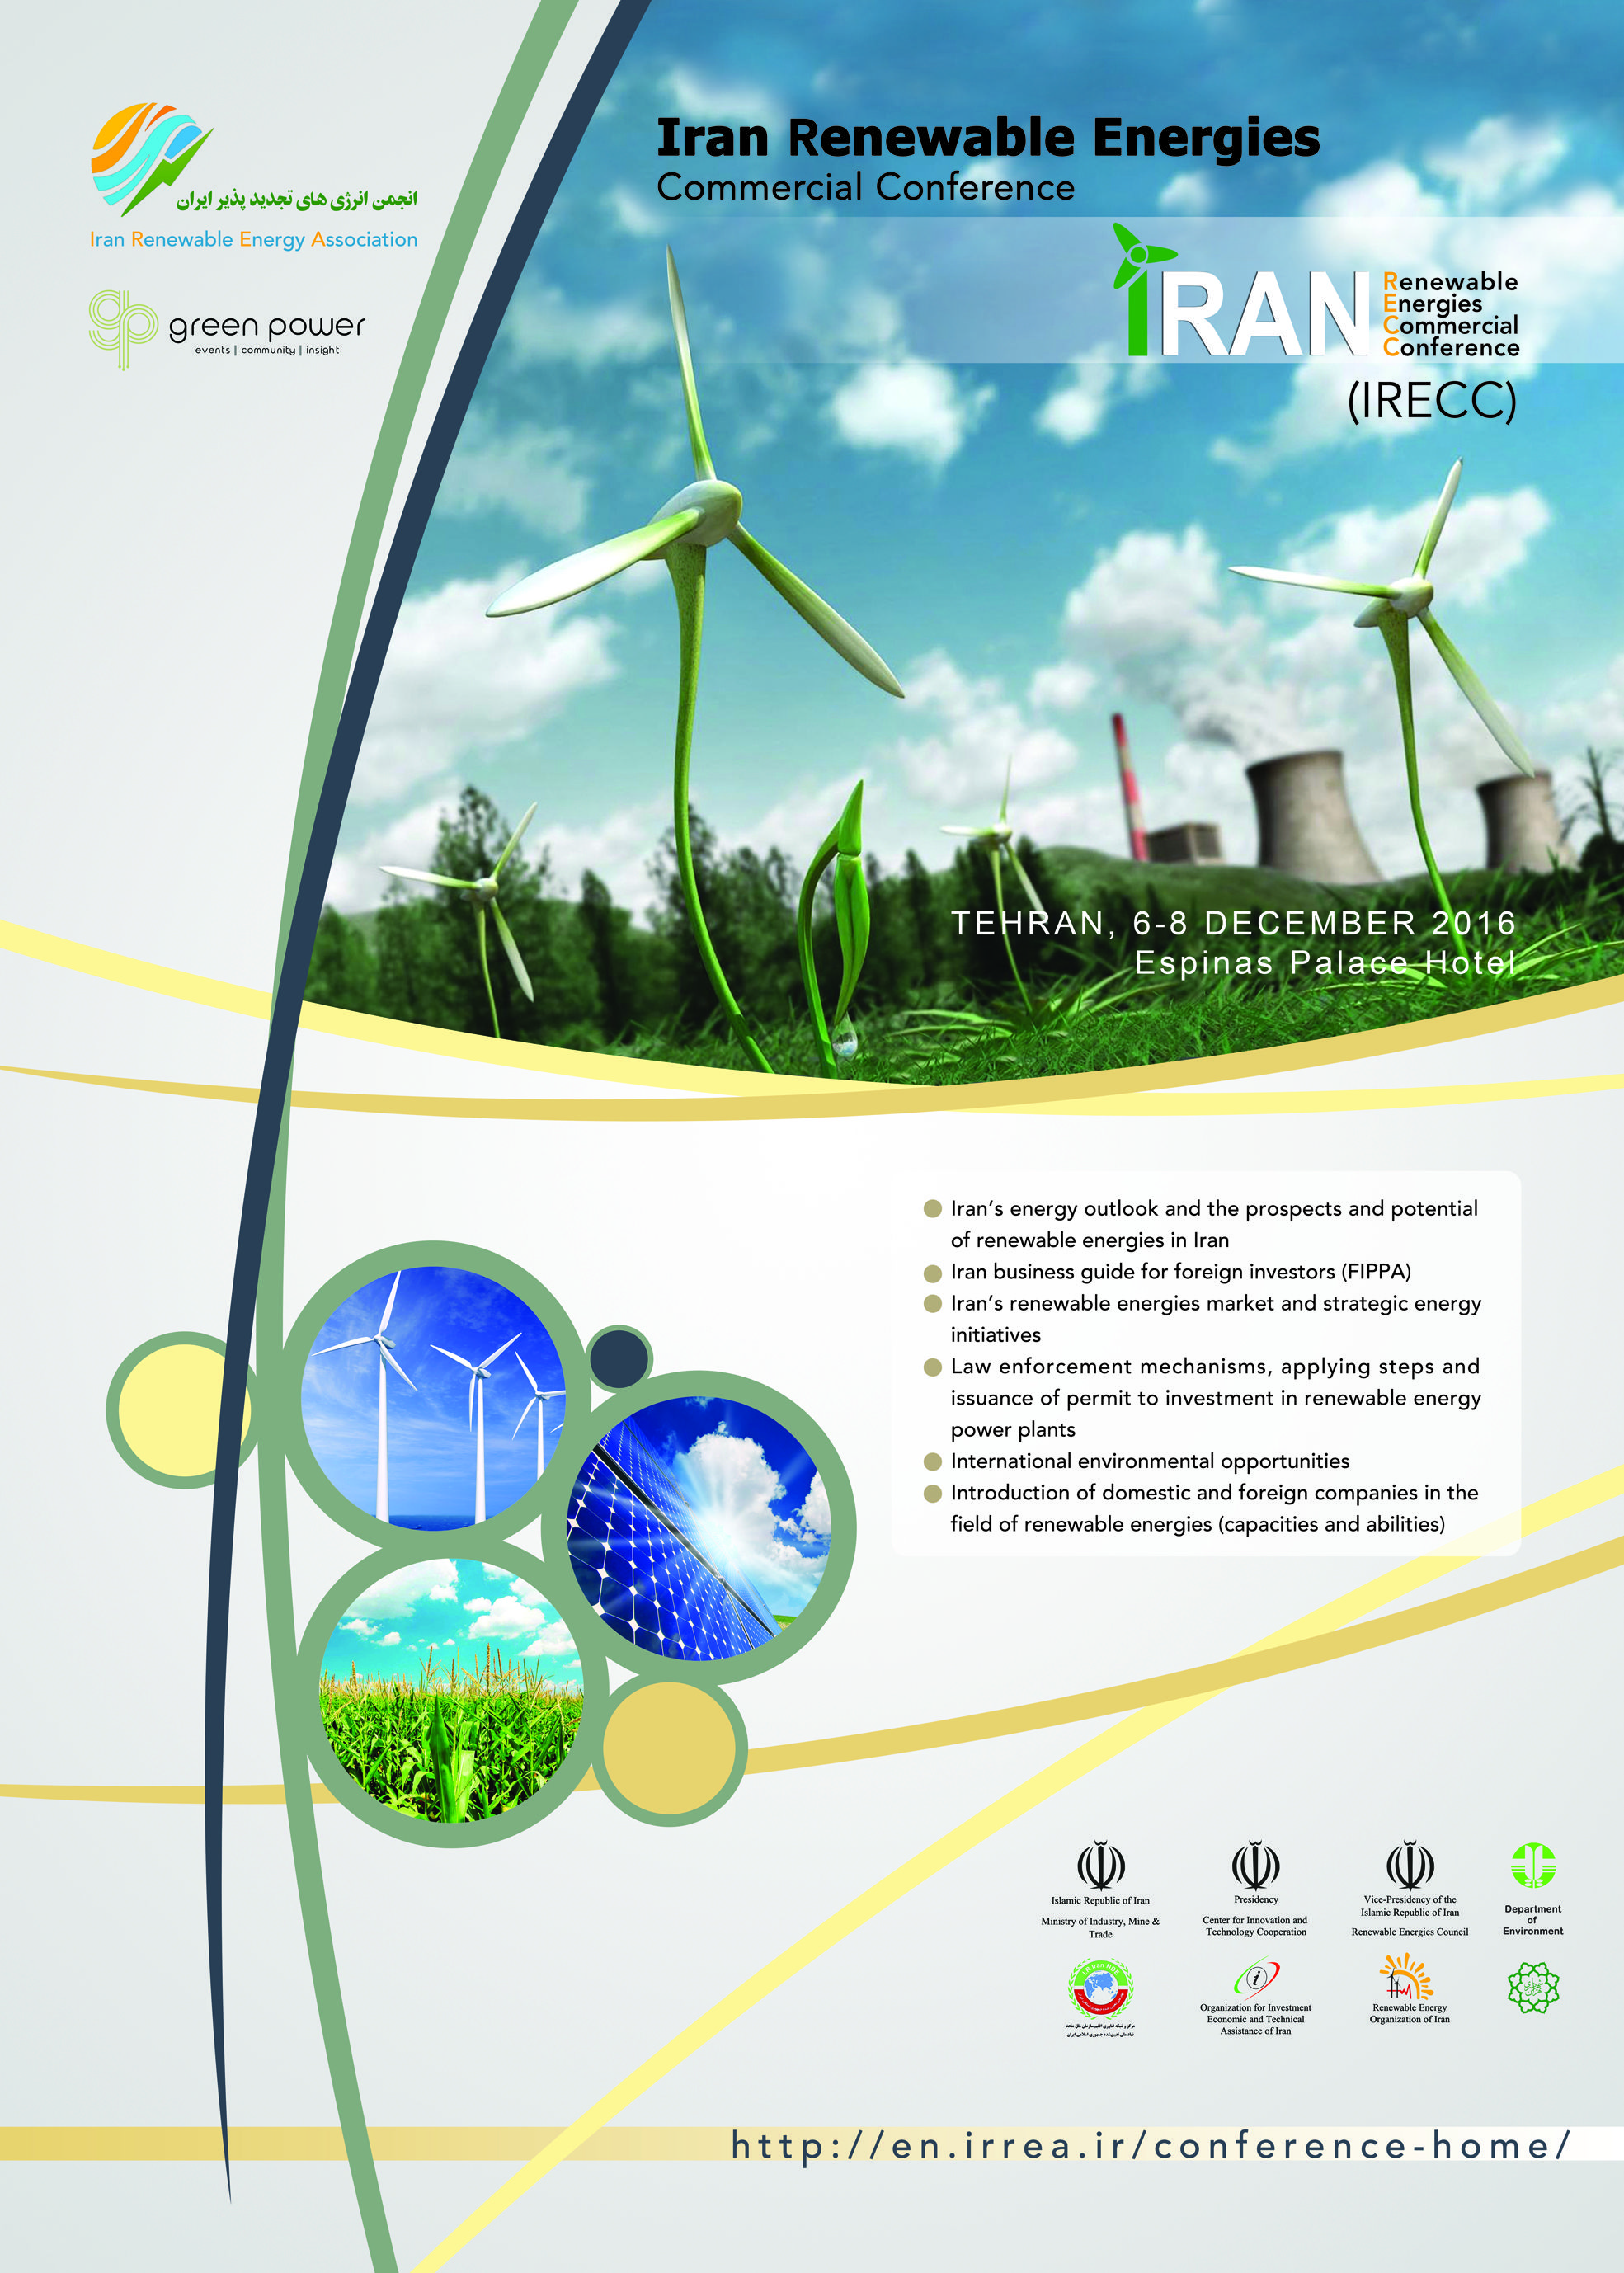 Iran Renewable Energies Commercial Conference